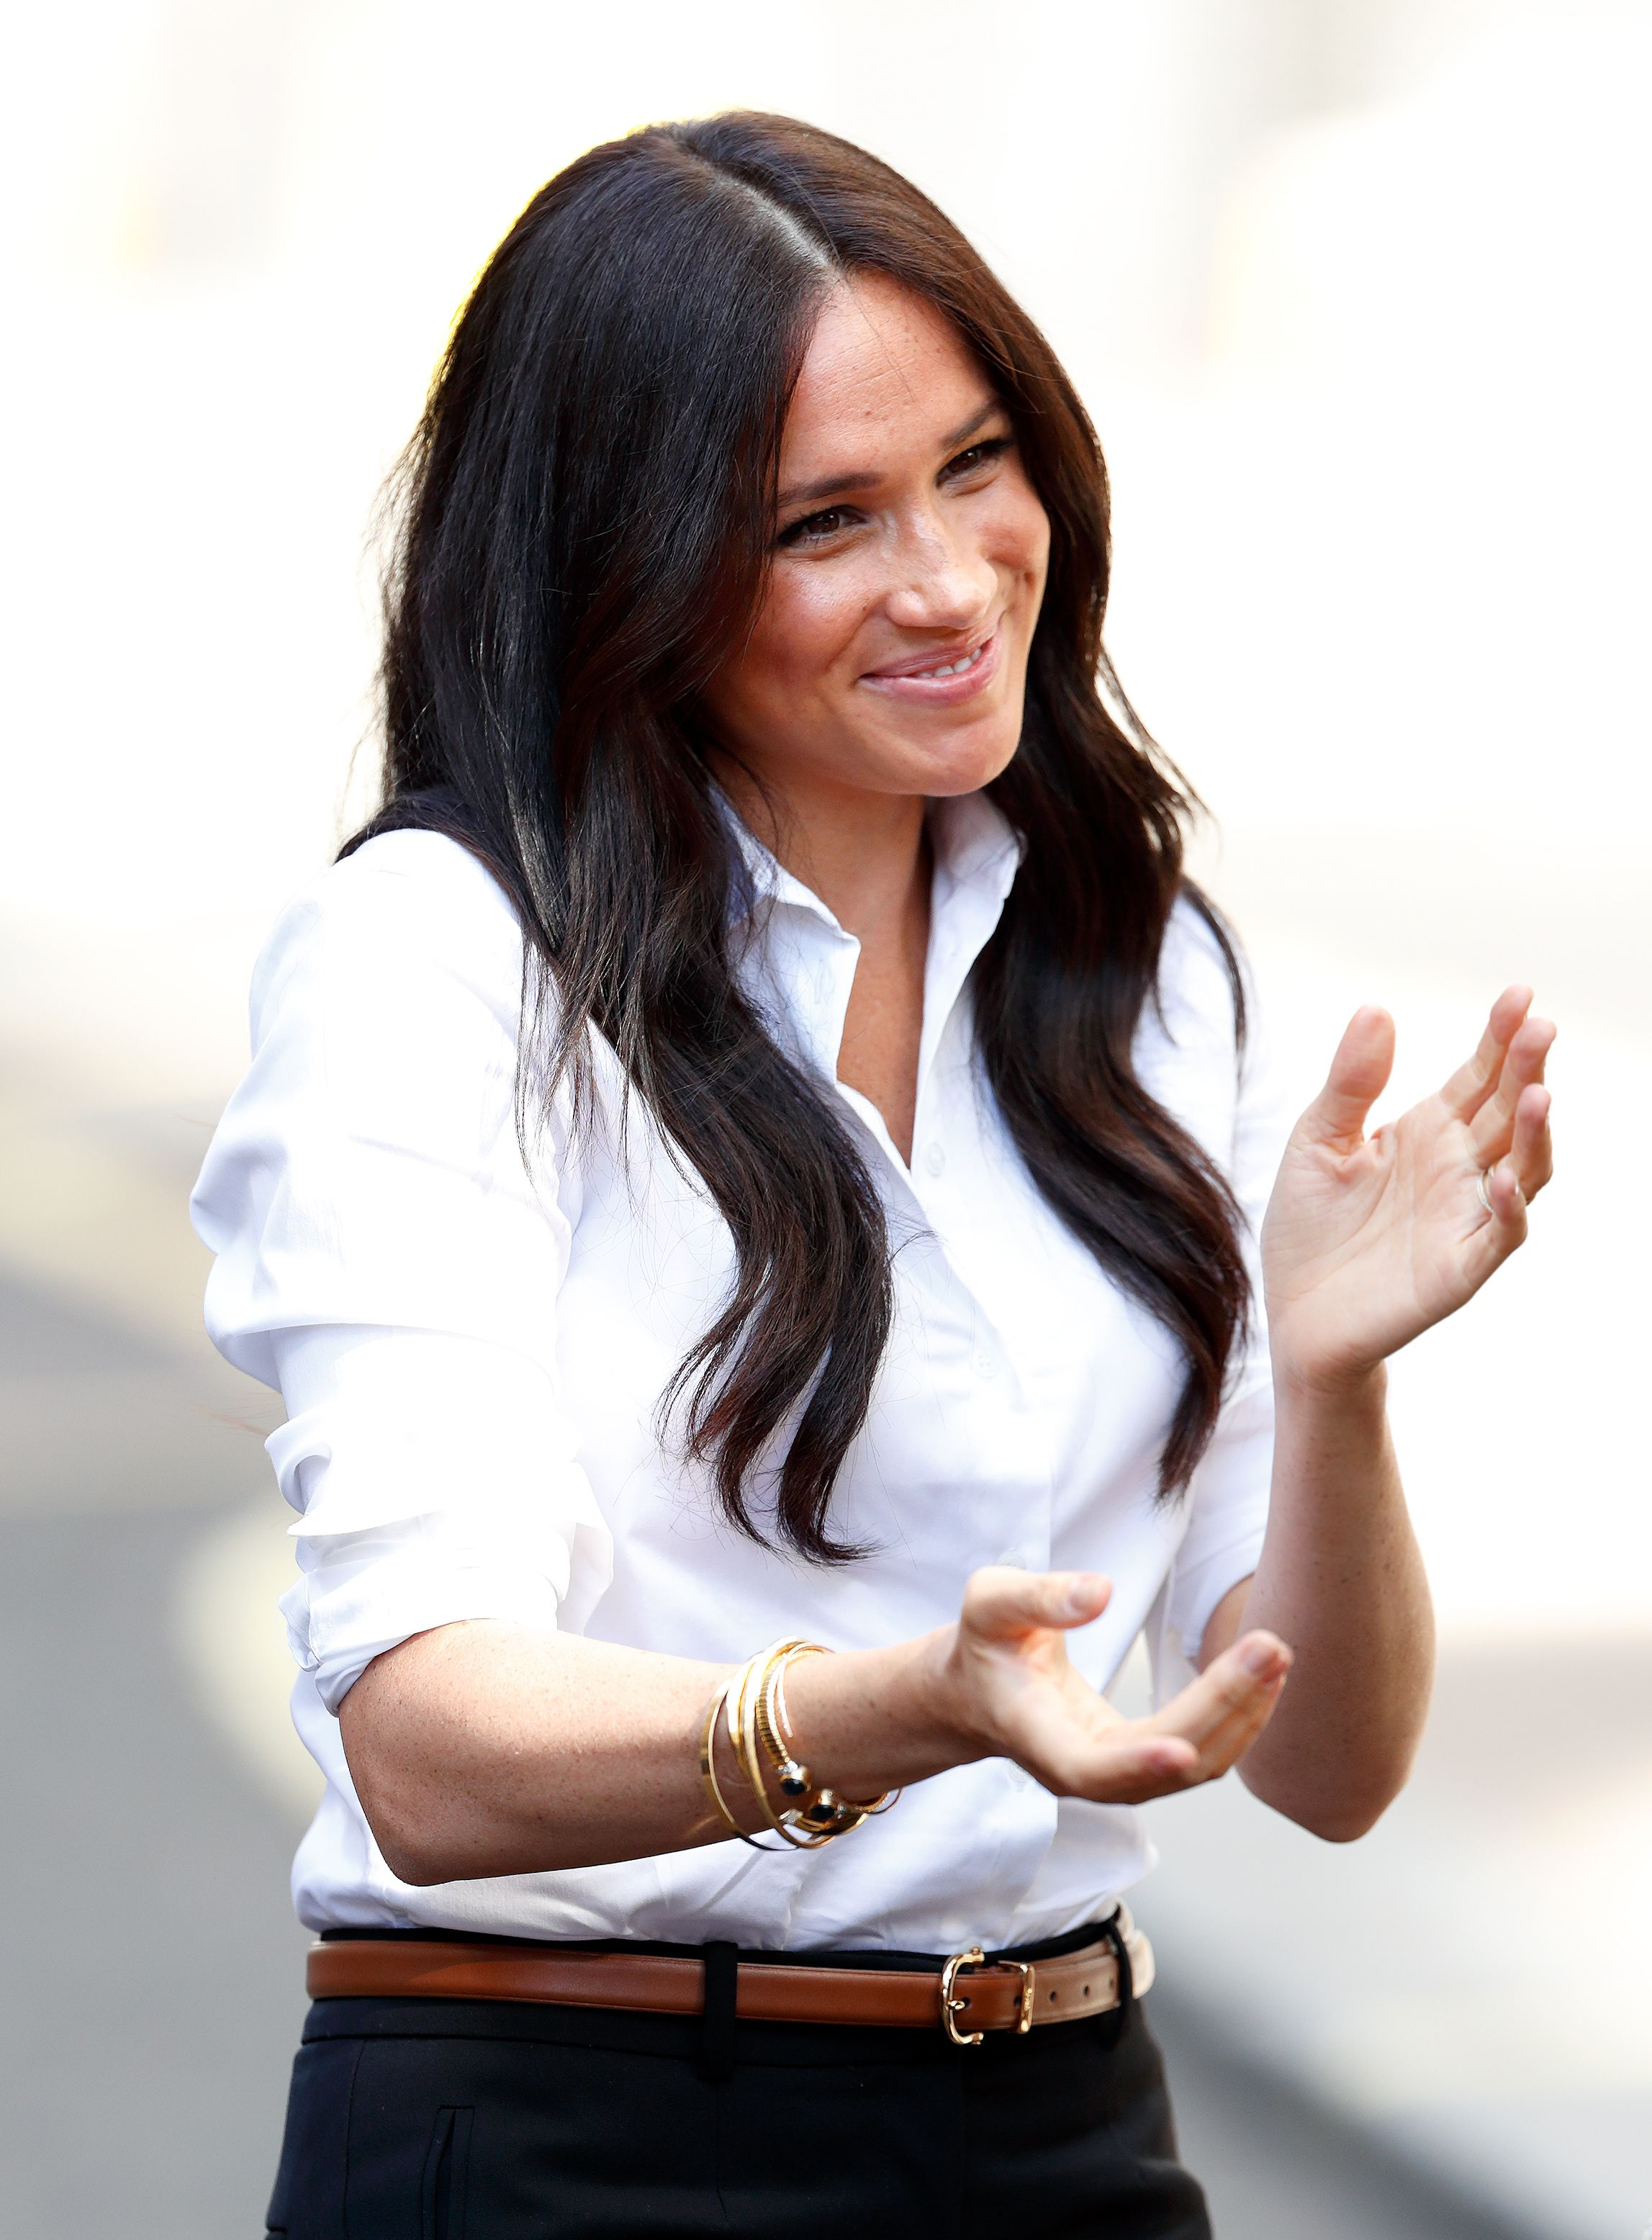 The Duchess of Sussex won't relaunch her blog